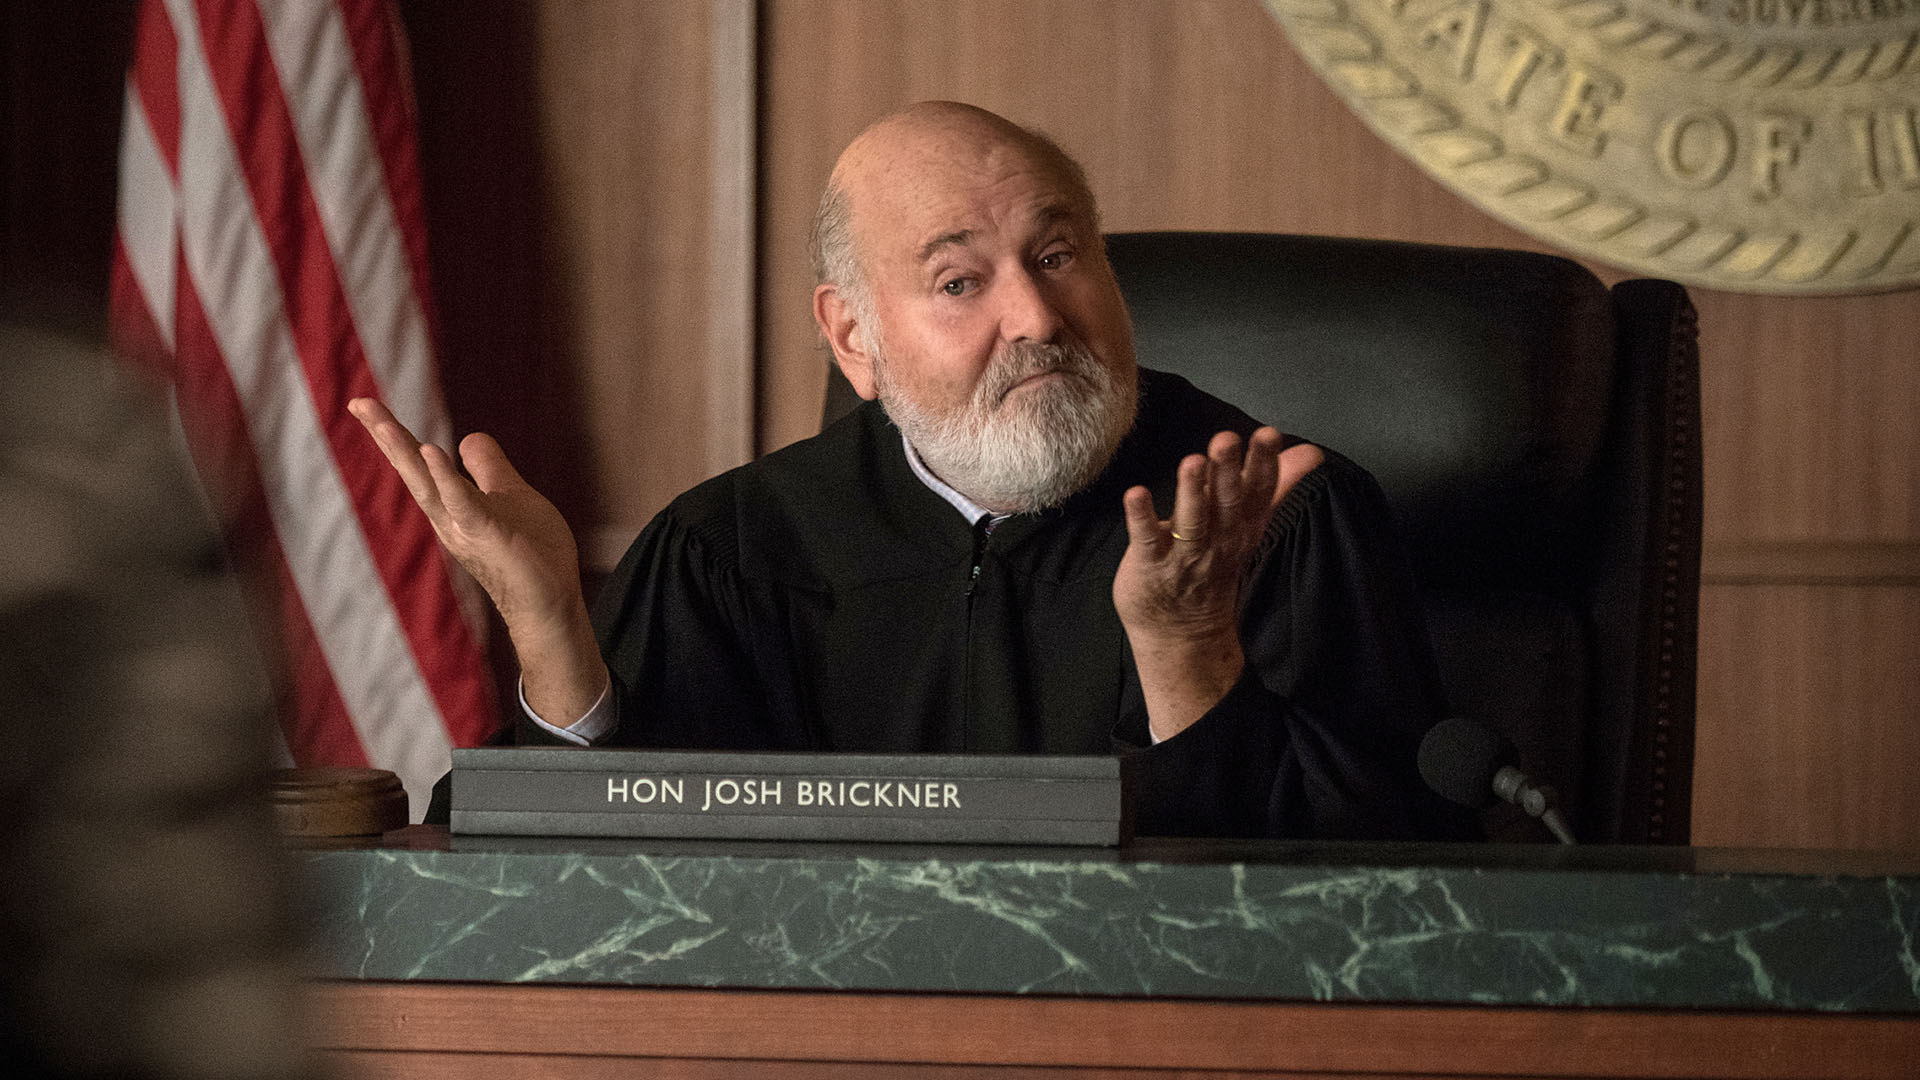 Rob Reiner as Judge Josh Brickner